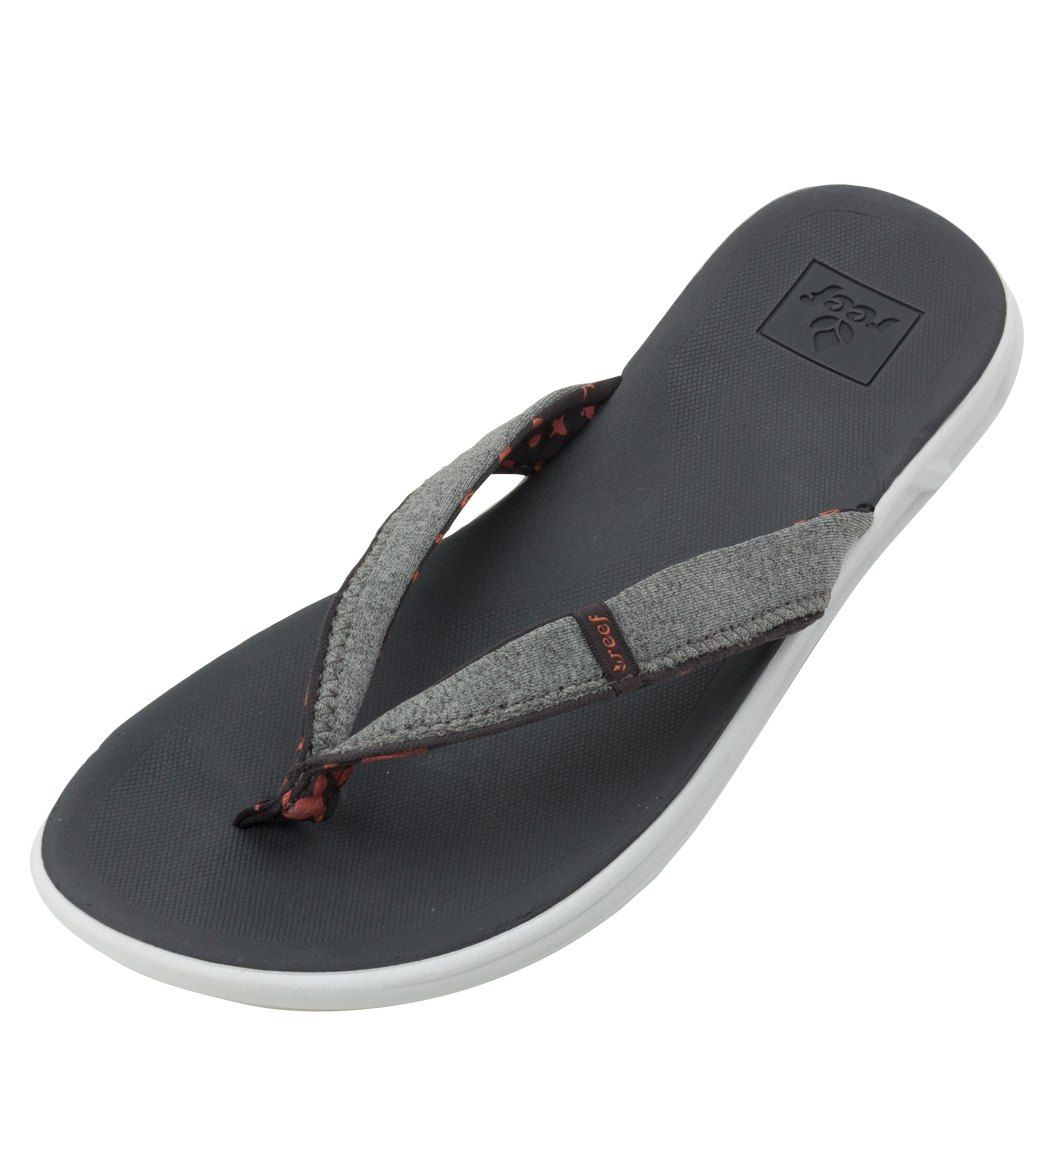 Reef Women's Reef Rover Catch Flip Flop at SwimOutlet.com